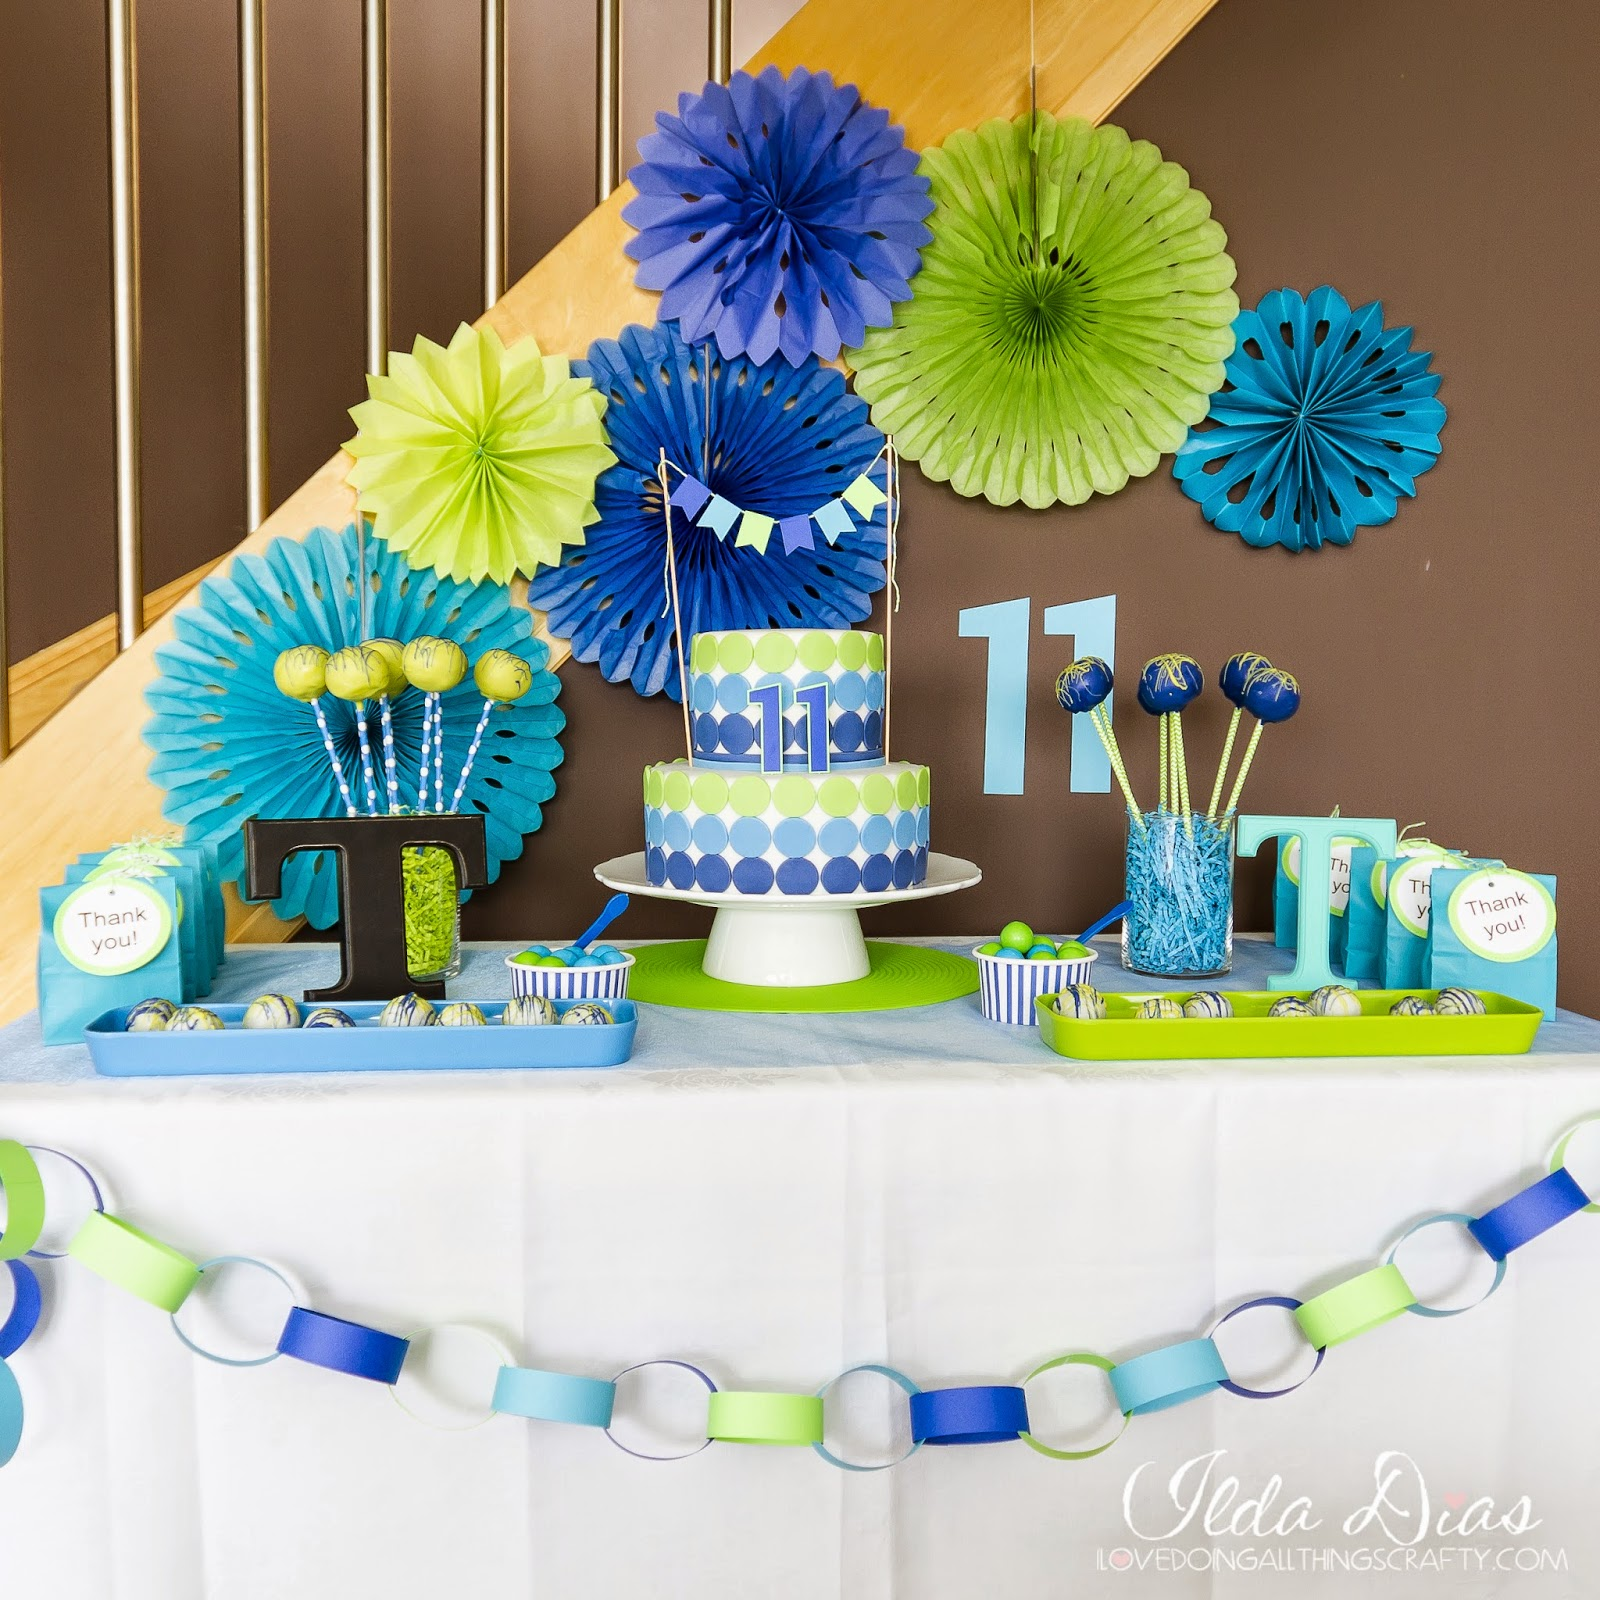 Simple Party Theme Karlapa Ponderresearch Co